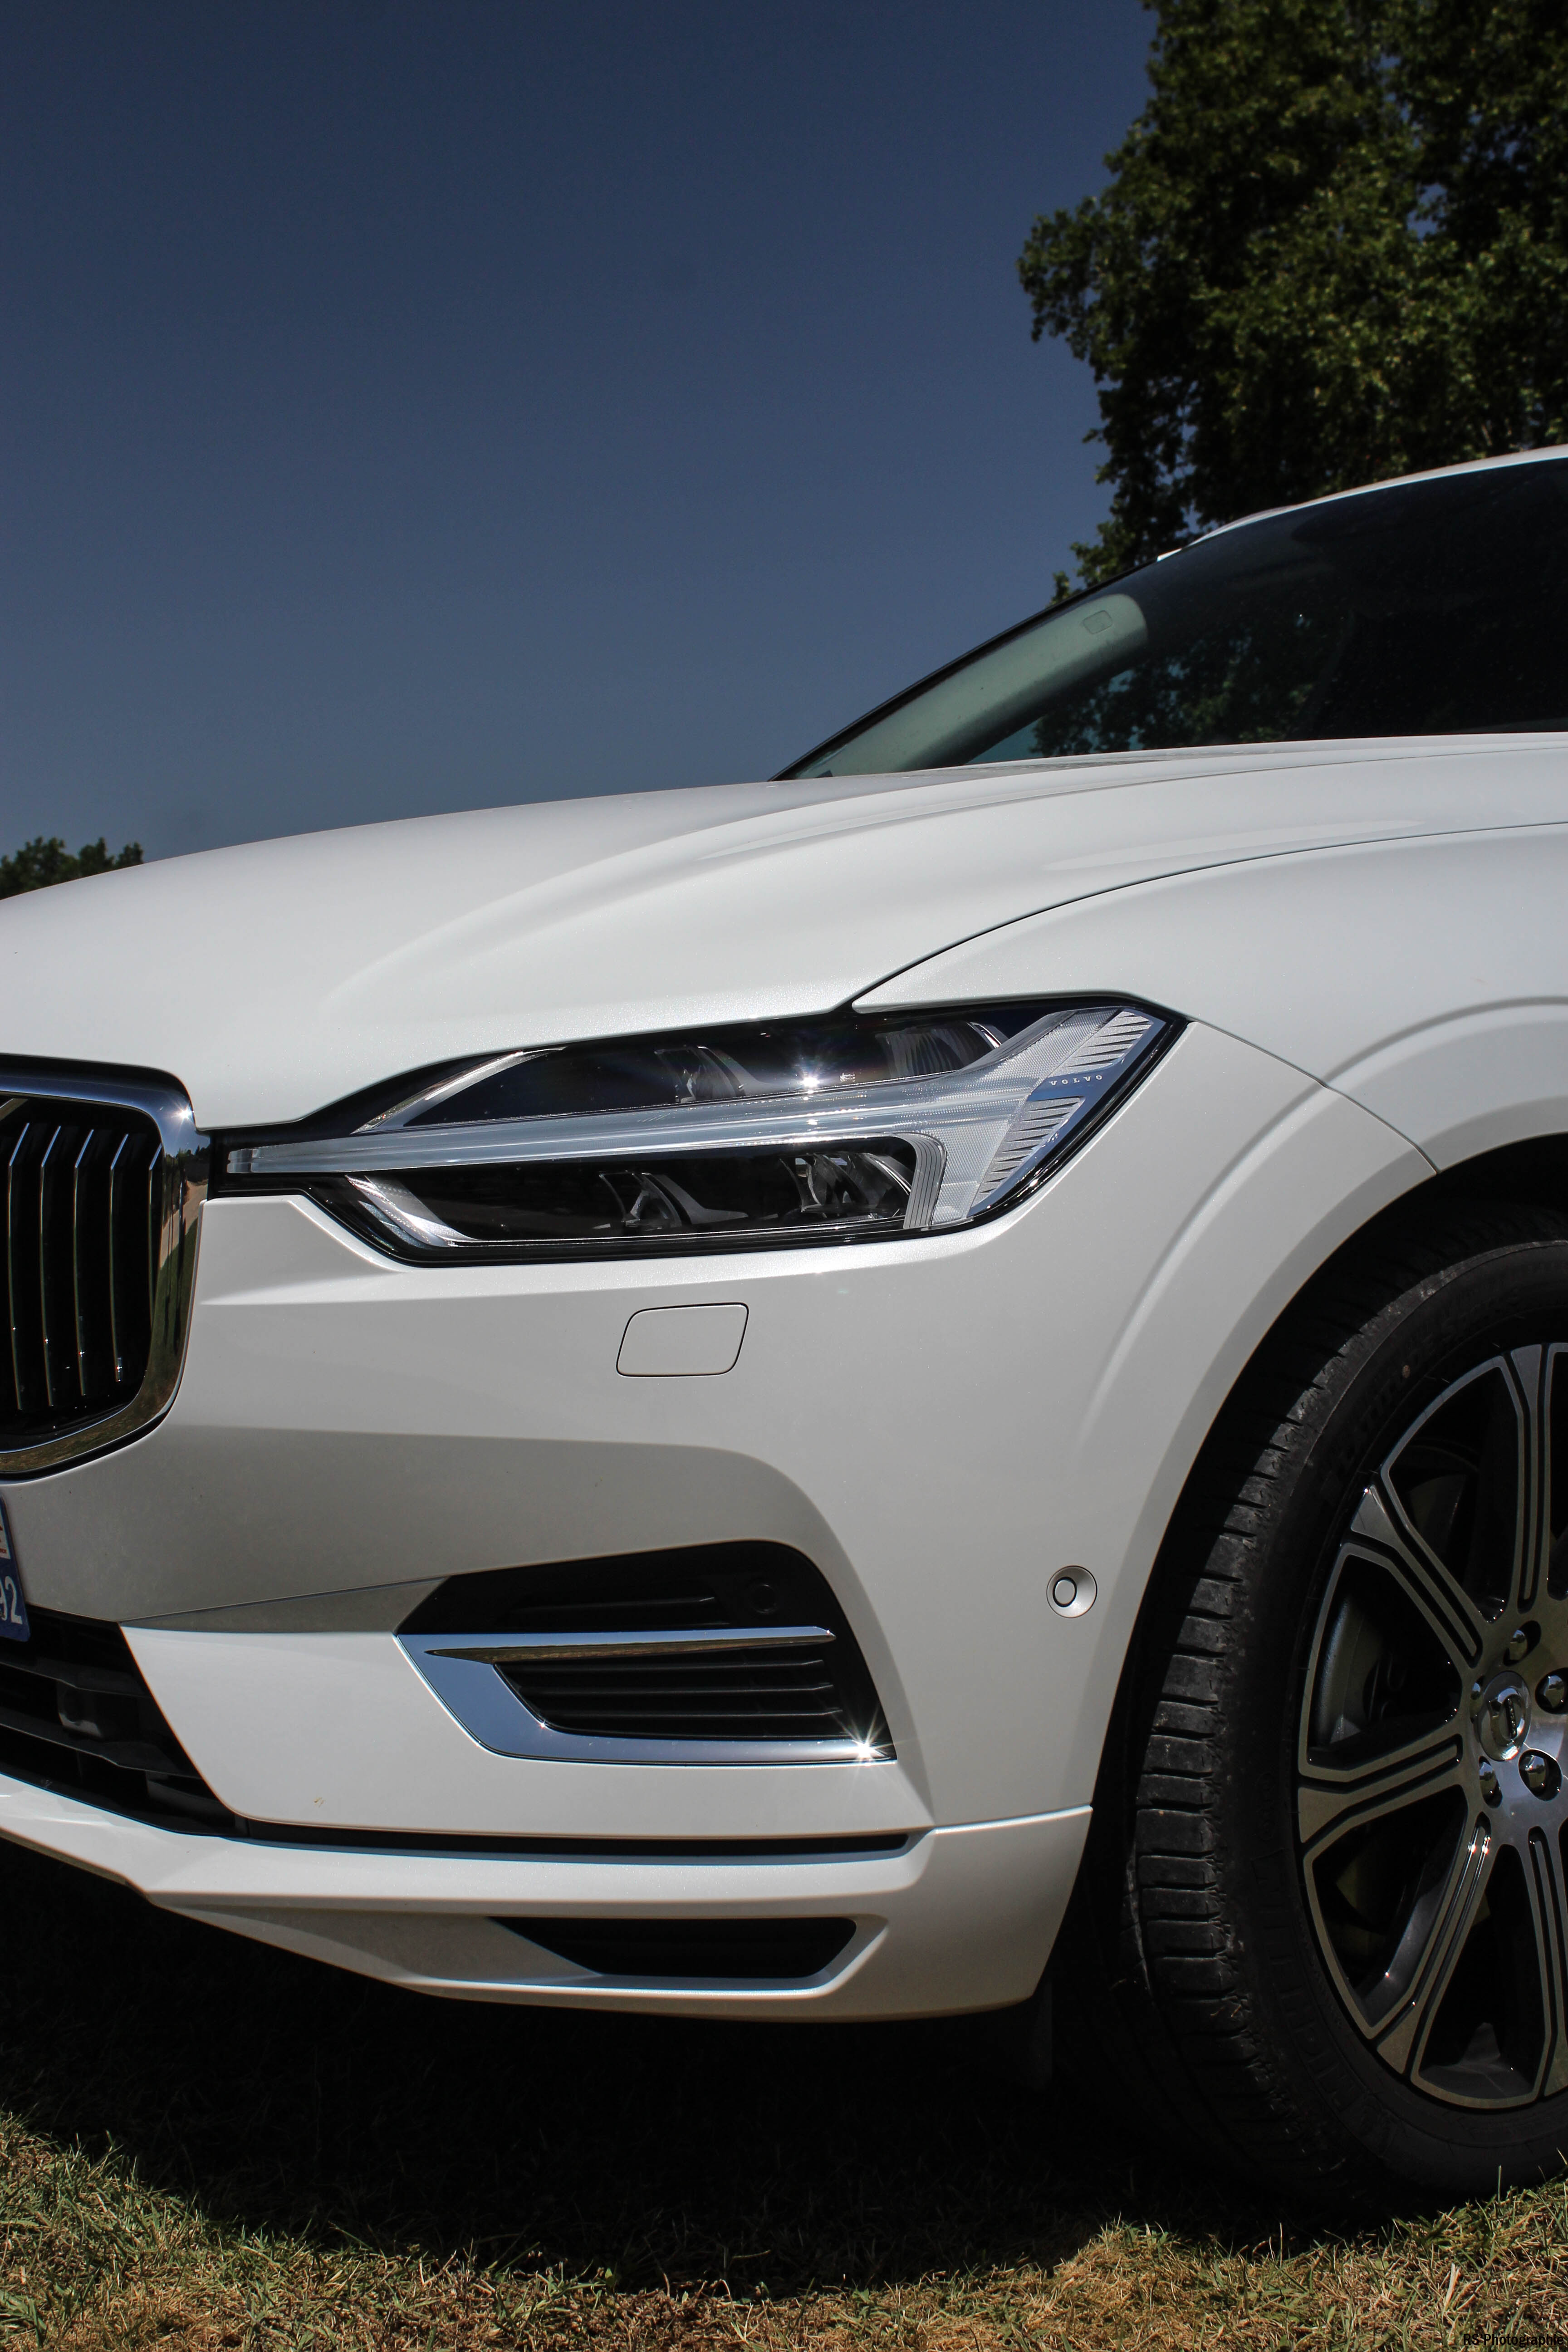 OpéVolvo21-volvo-xc60-avant-front-Arnaud Demasier-RSPhotographie